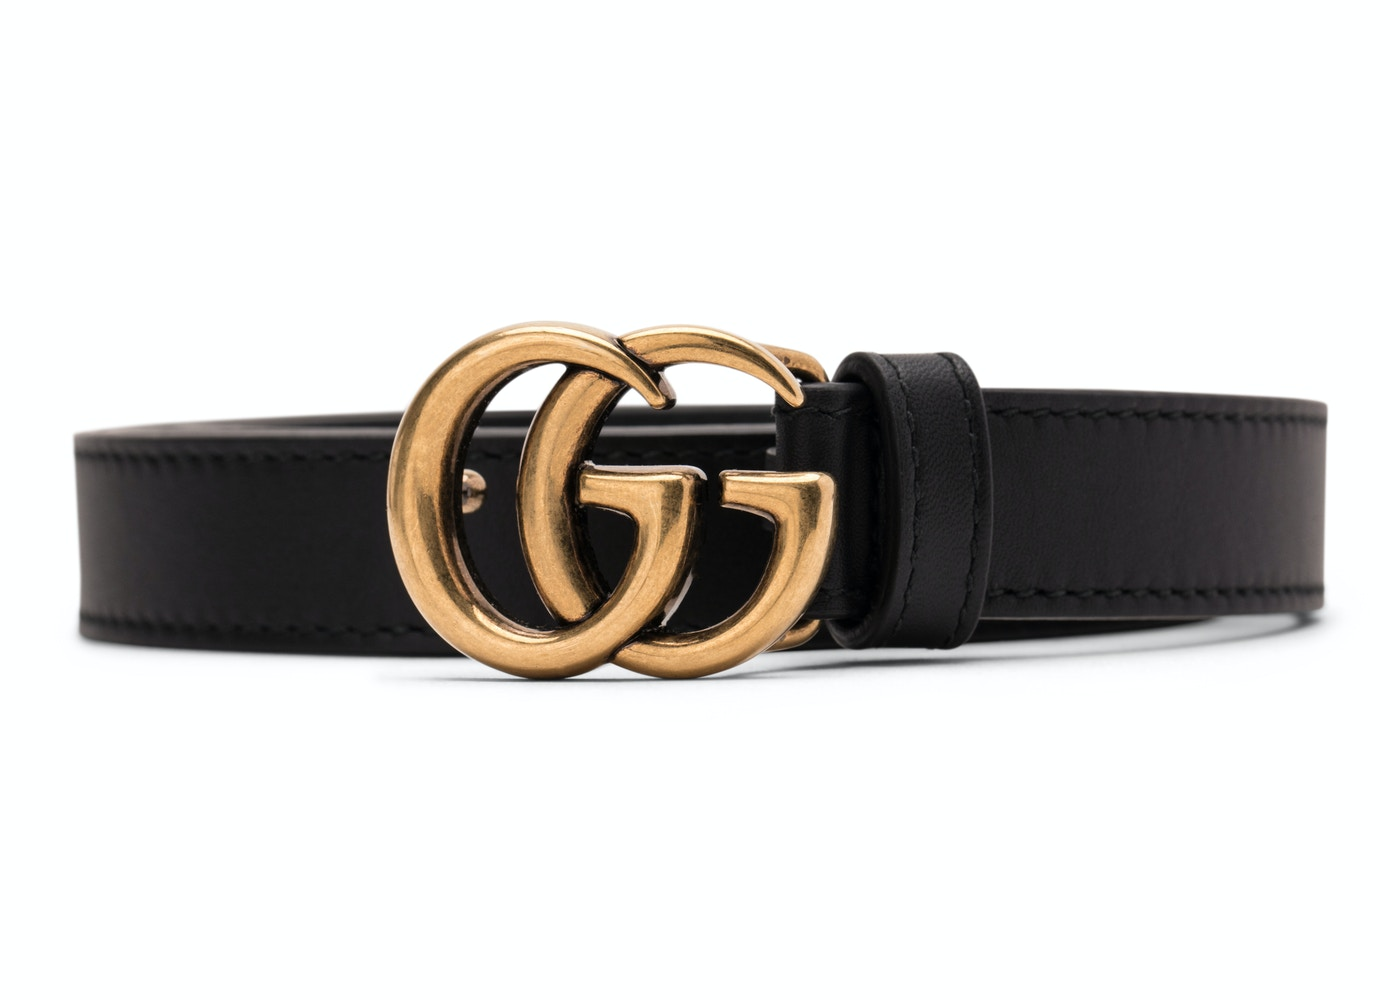 b758891890 Gucci Double G Gold Buckle Leather Belt 0.8 Width Black